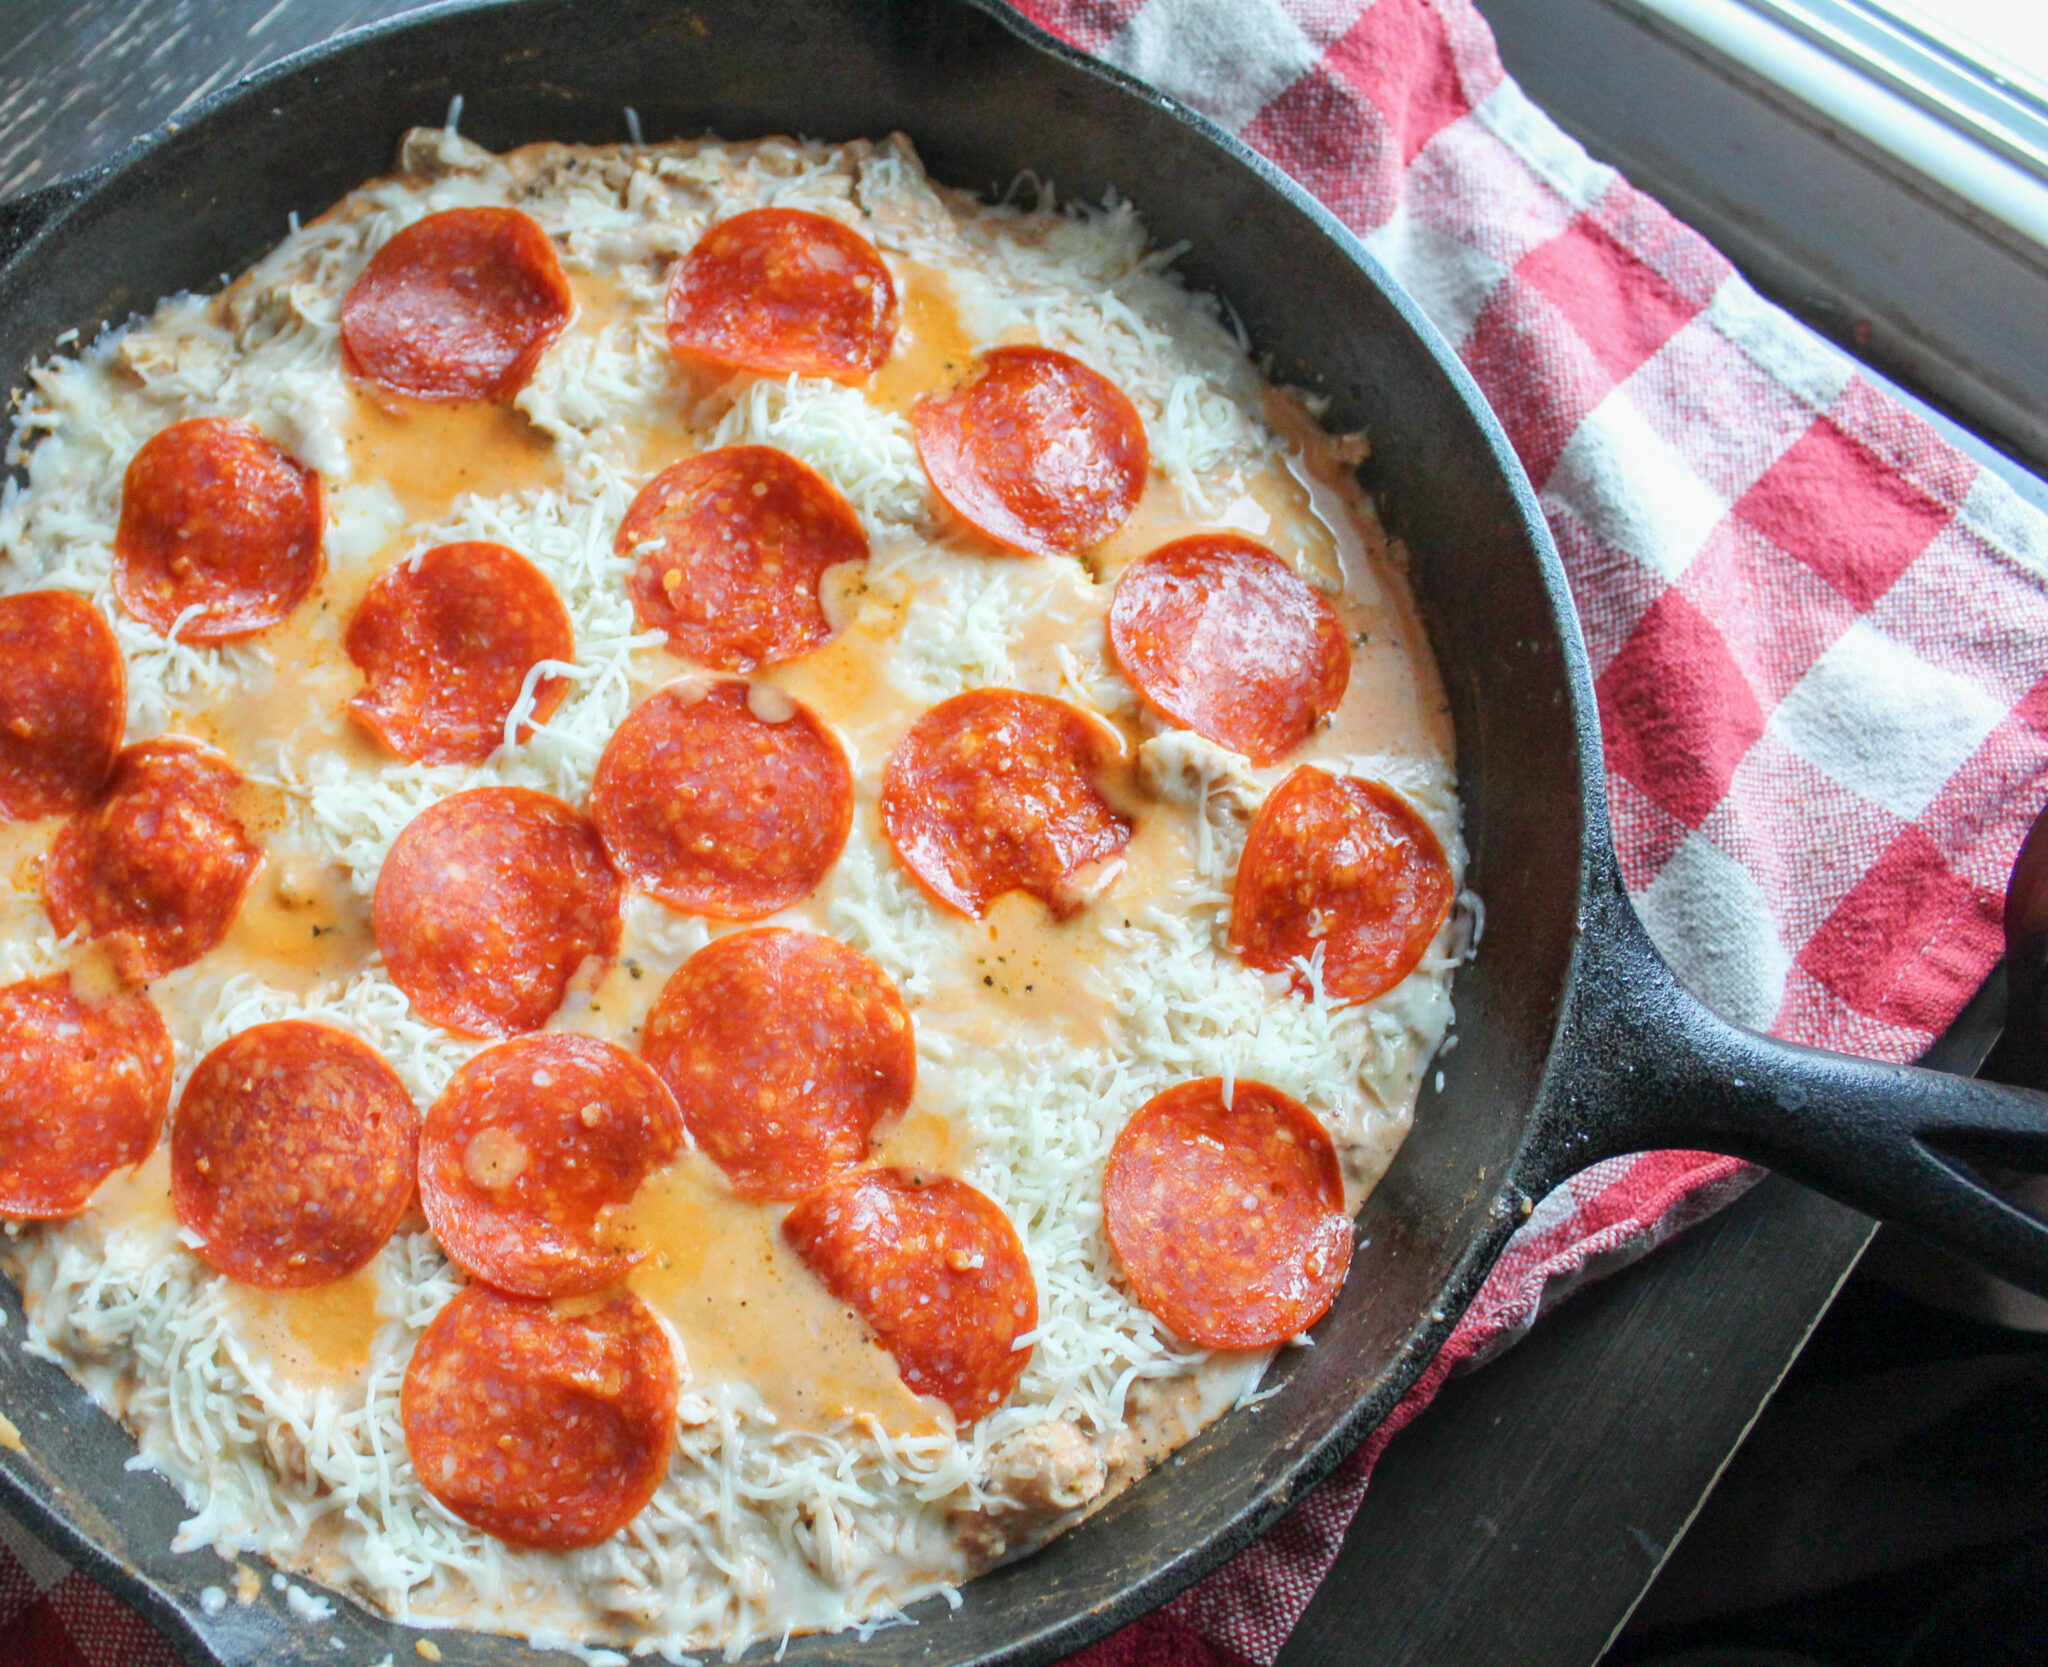 My Pepperoni Chicken Skillet is a slimming way to enjoy all the BEST flavors of pizza! This is a family-friendly meal that comes together in no time.